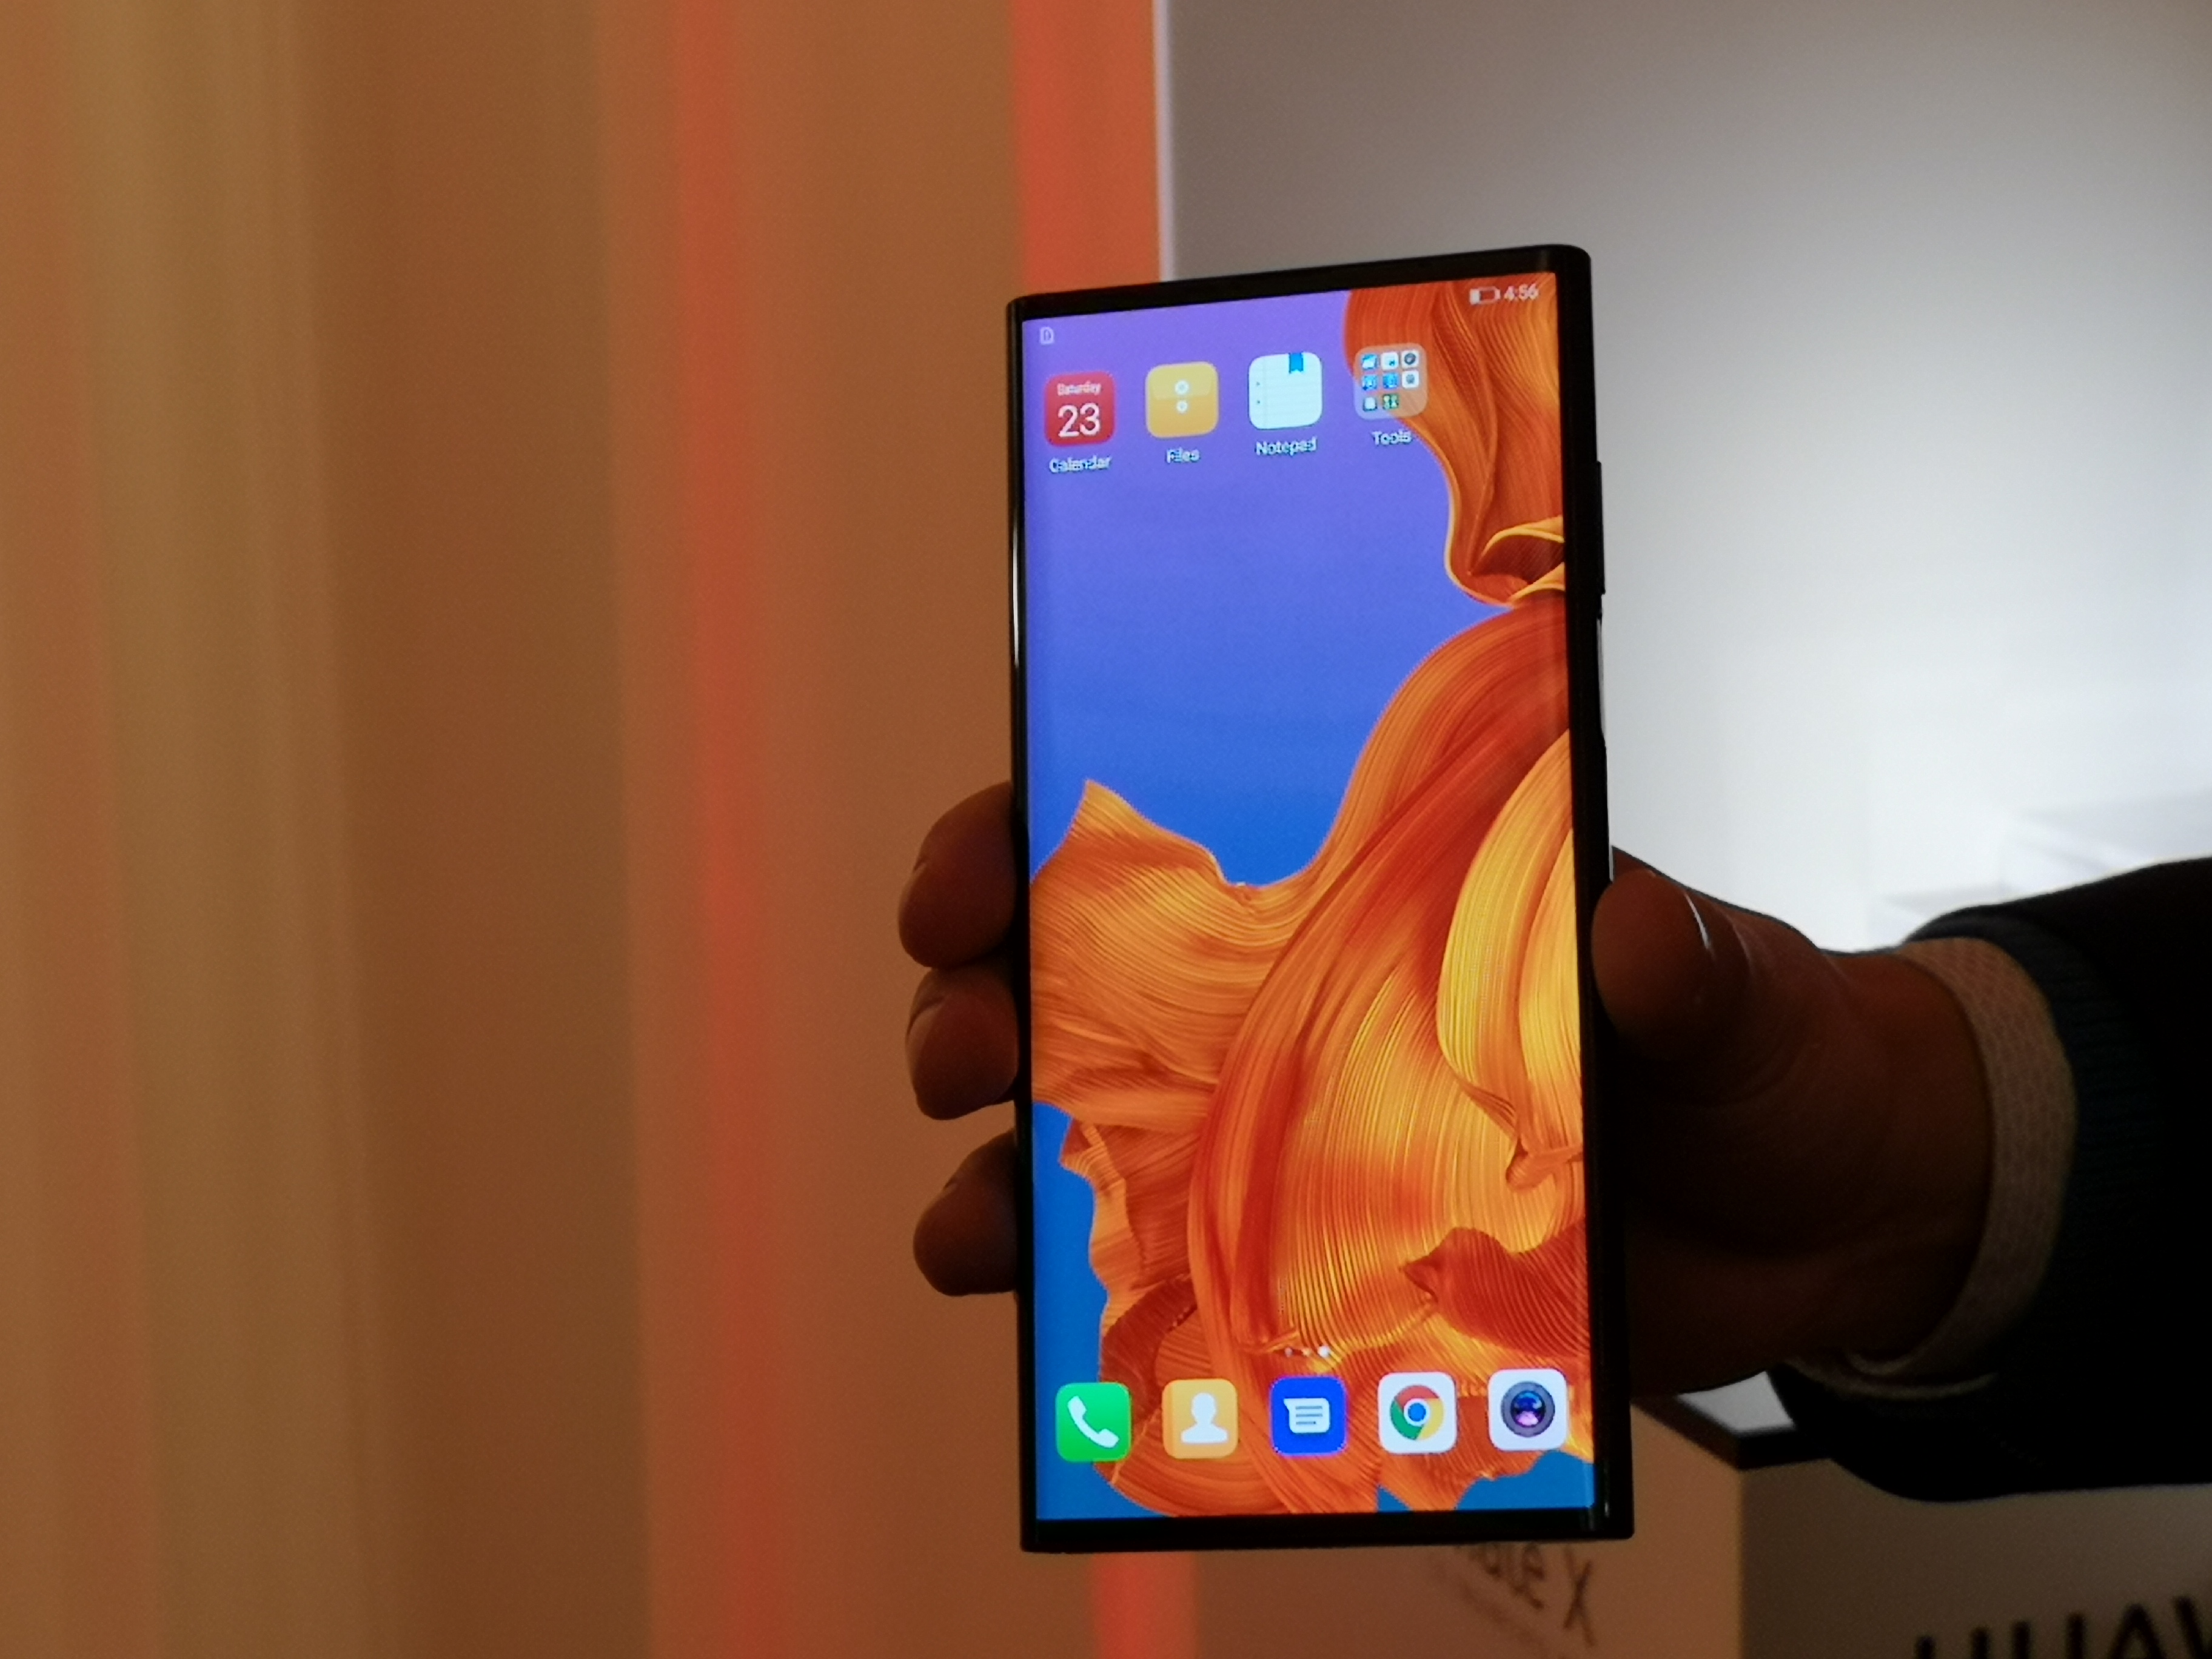 Huawei unveils the 5G foldable Mate X smartphone starting at $2,600